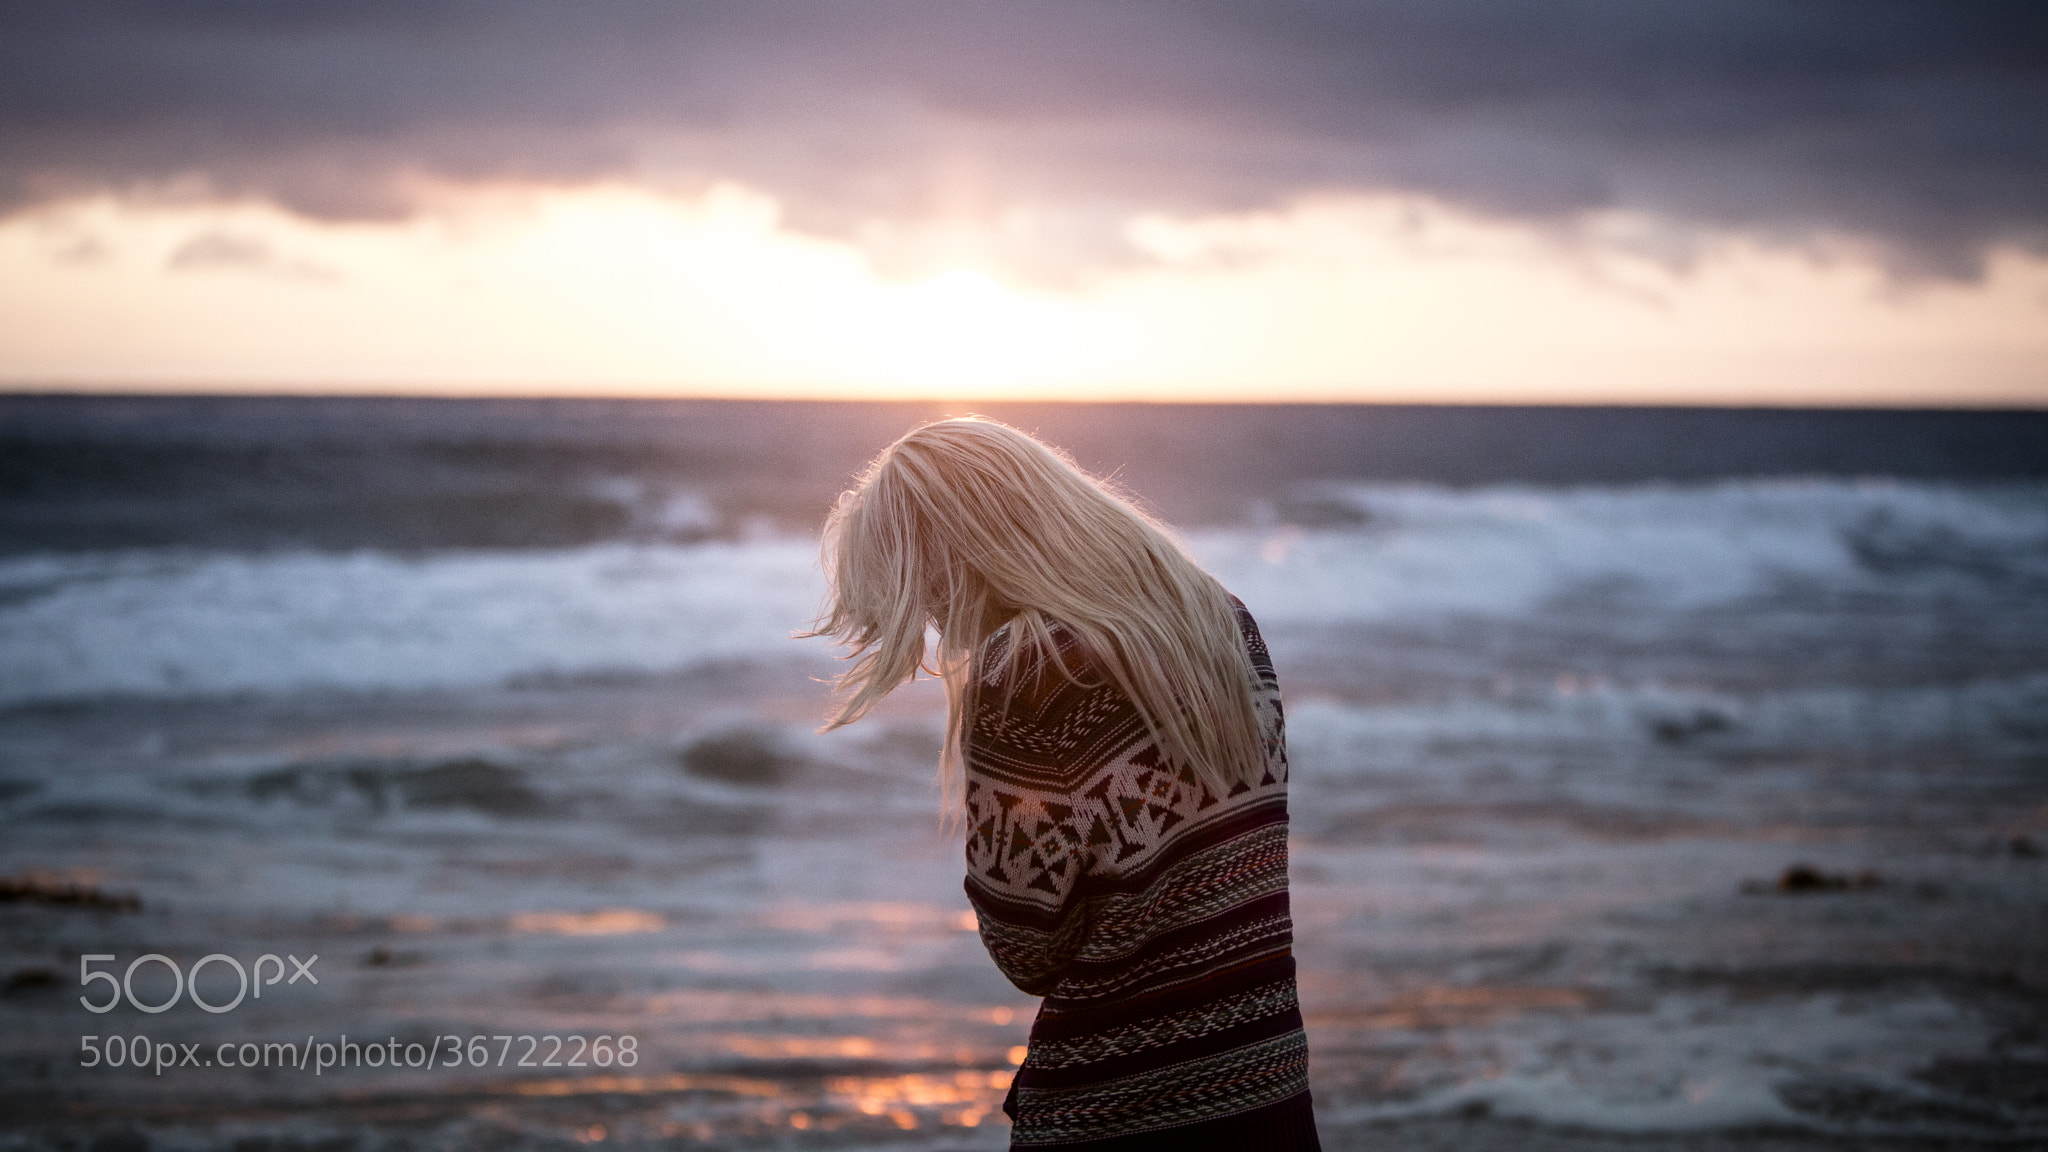 Photograph Her and the Sea by Jeff Dotson on 500px